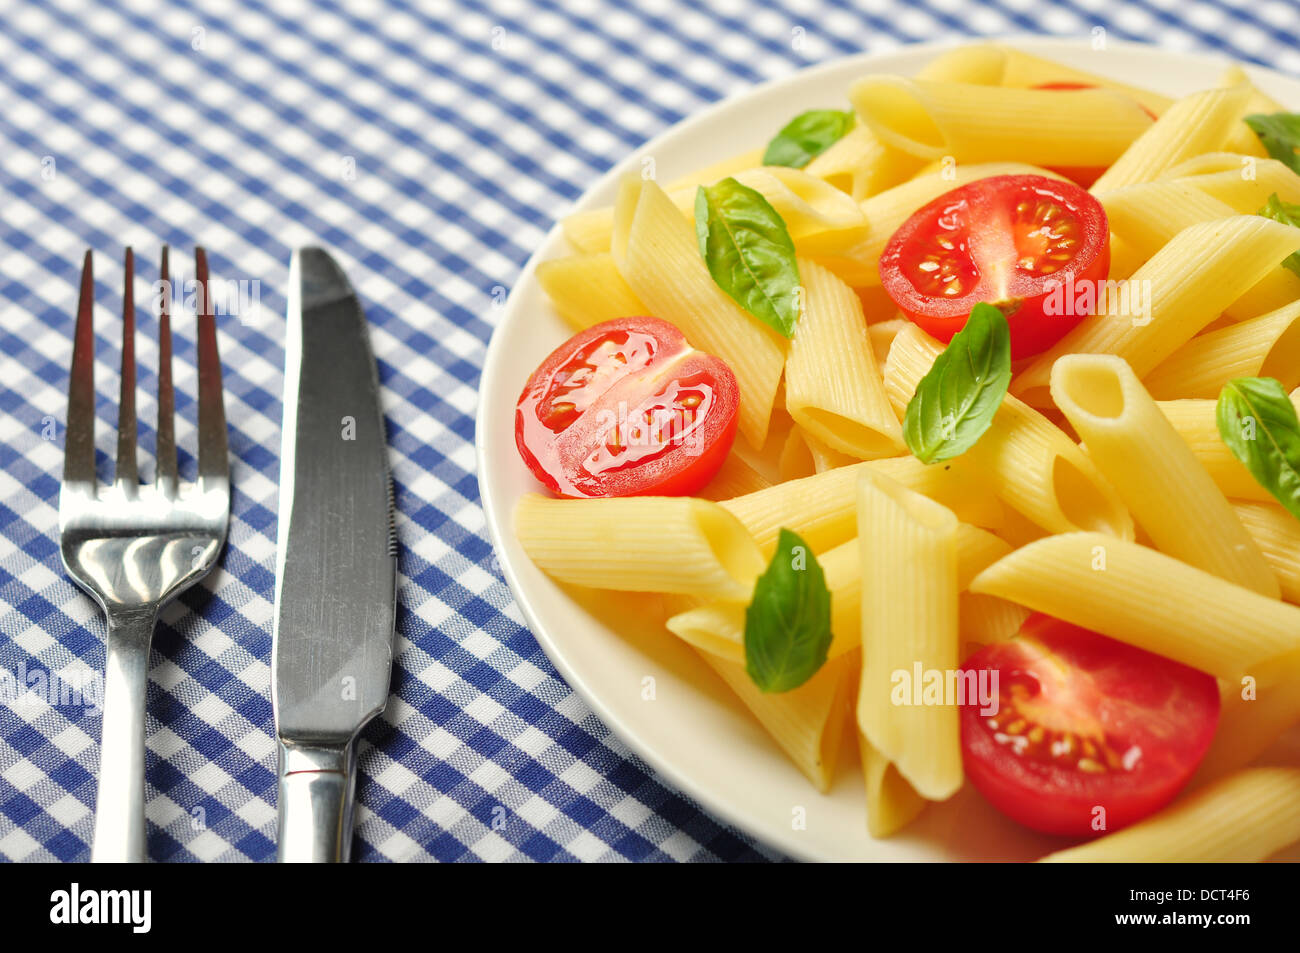 Penne pasta with cherry tomatoes and basil closeup - Stock Image